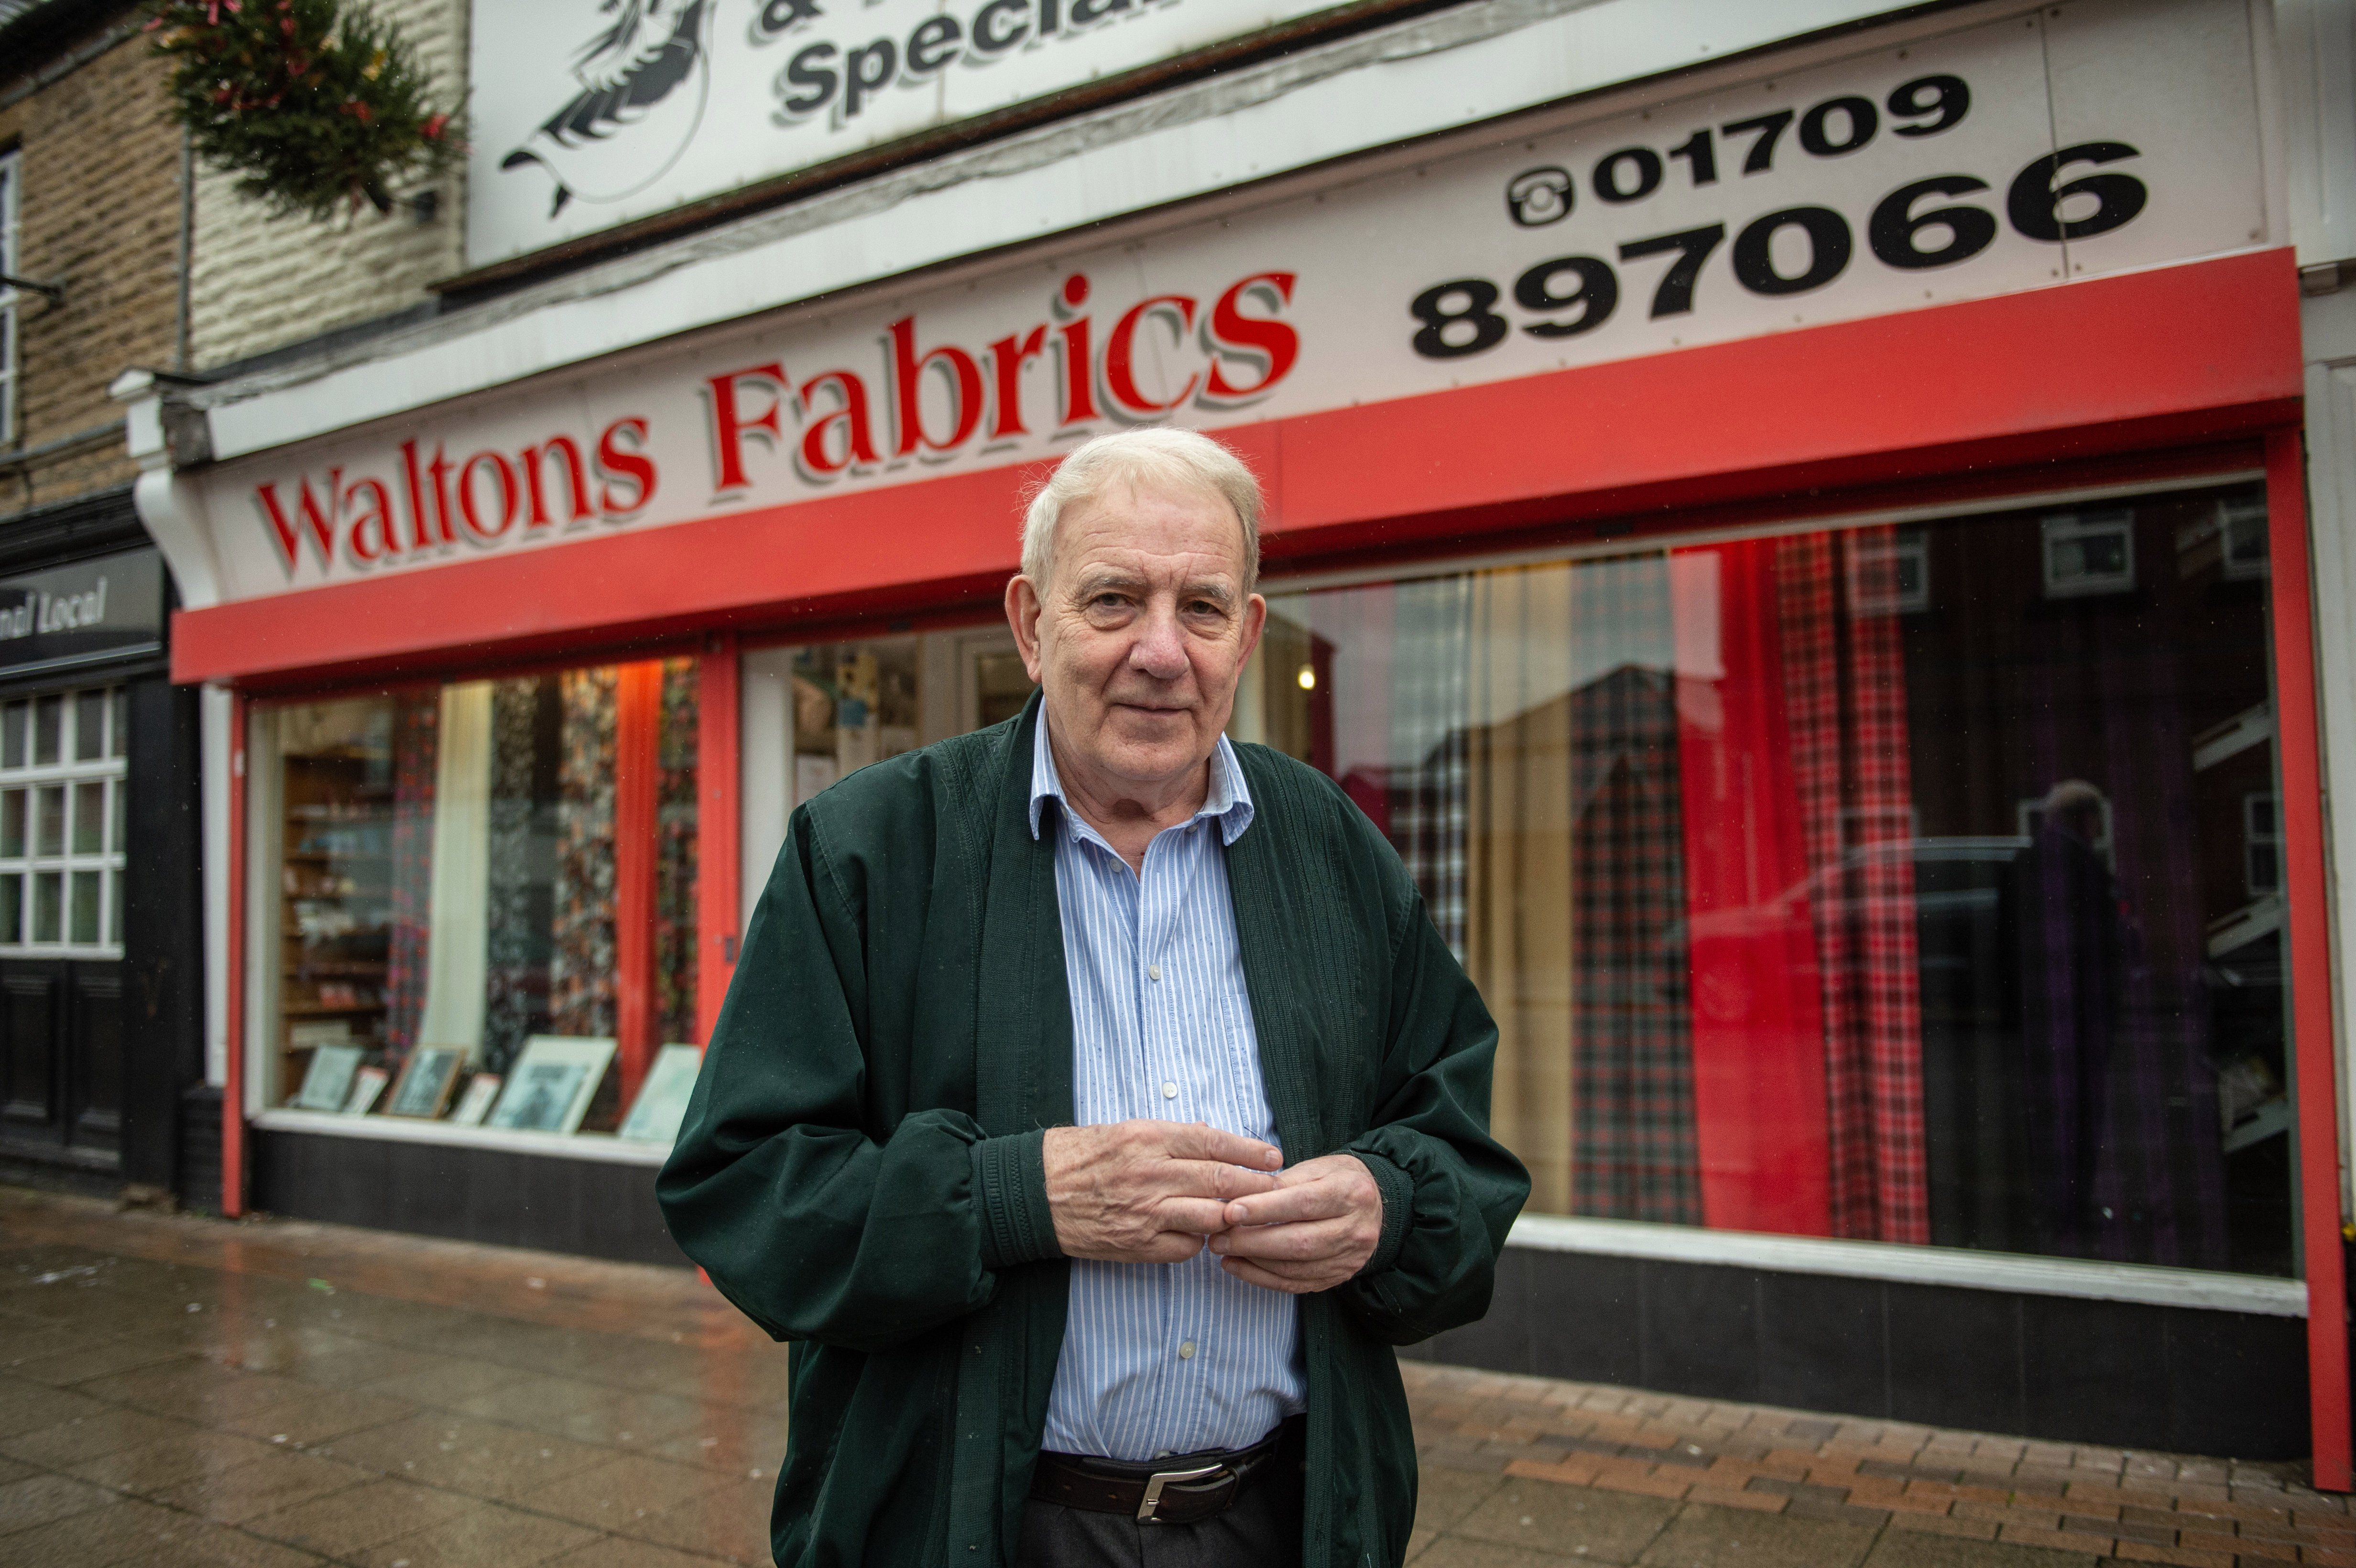 Keith Walton, 79, has been running Waltons Fabrics in Goldthorpe for 50 years and says it is bucking the downward trend by having a 'good name' and keeping prices lower than those found online